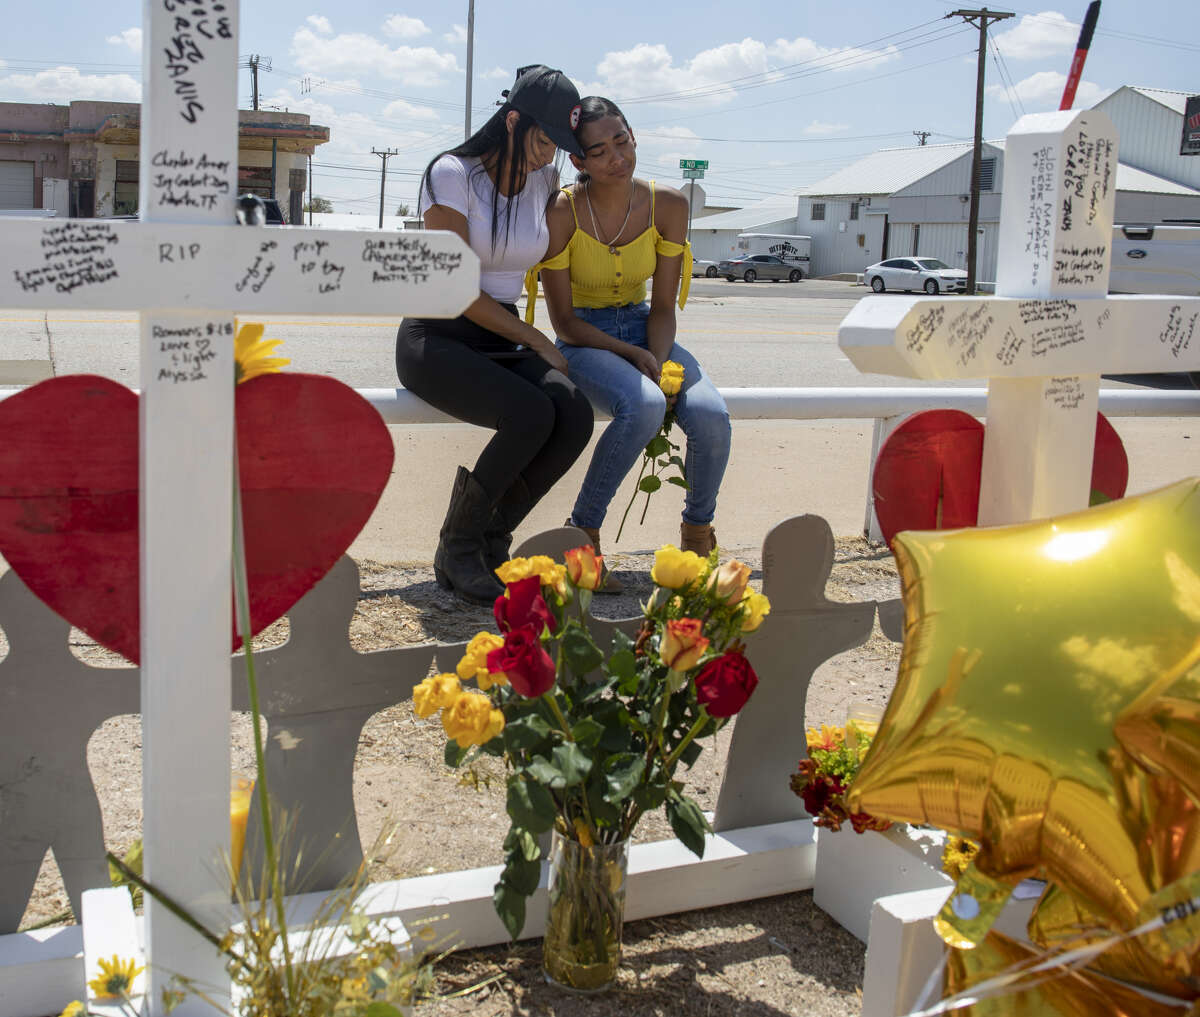 Kimberly Juarez and her mother, Lizeth Aguilar, mourn at white crosses, made by Greg Zanis from Illinois, that were placed on Tuesday, Sept. 3, 2019, at 2nd Street and Sam Houston Avenue in Odessa, Texas.Juarez's best friend, Leilah Hernandez, died in the mass shootings on Saturday, Aug. 31.